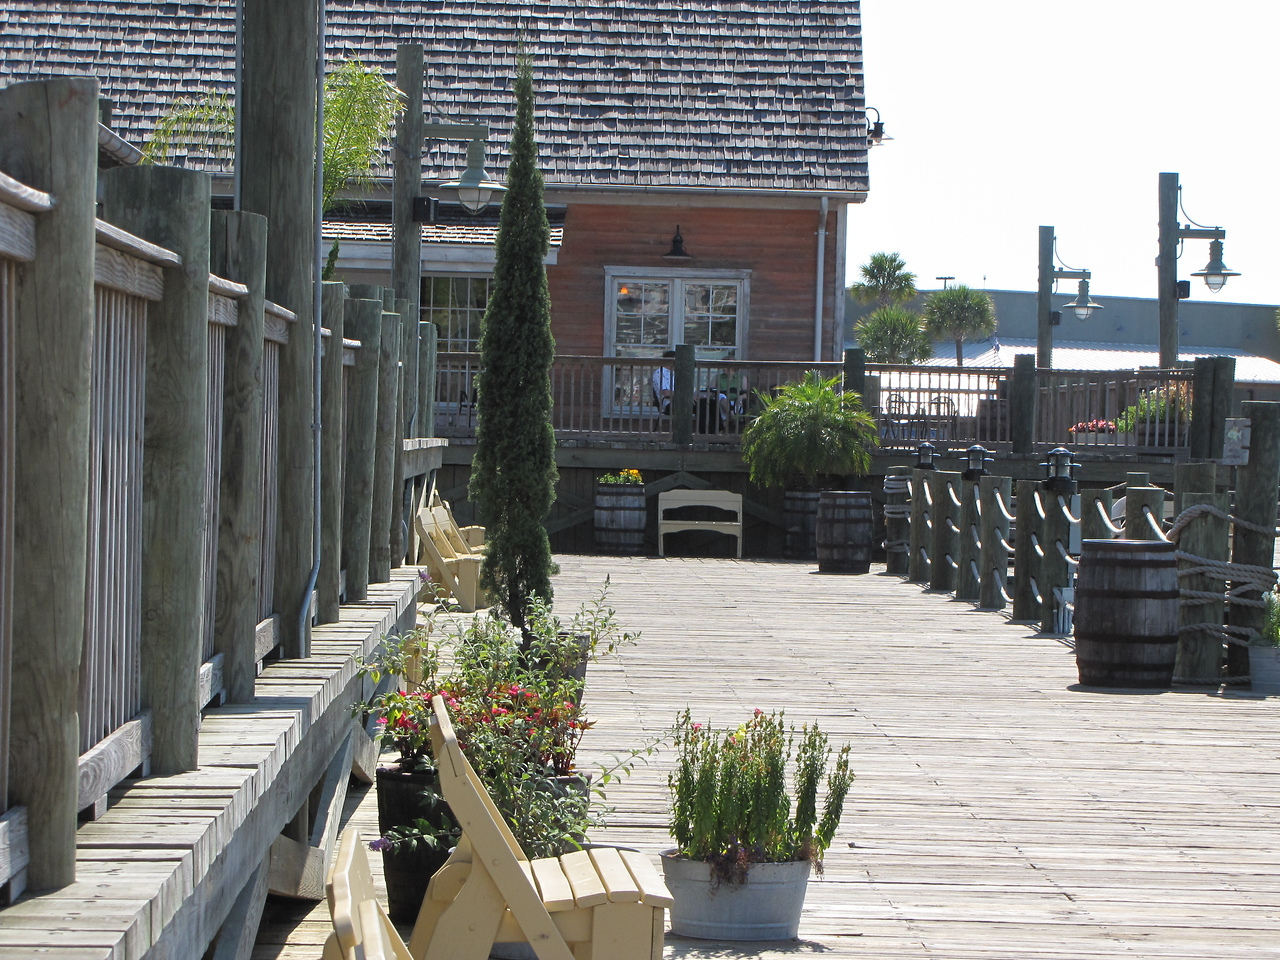 The board walk at Sumter Landing Town Square.